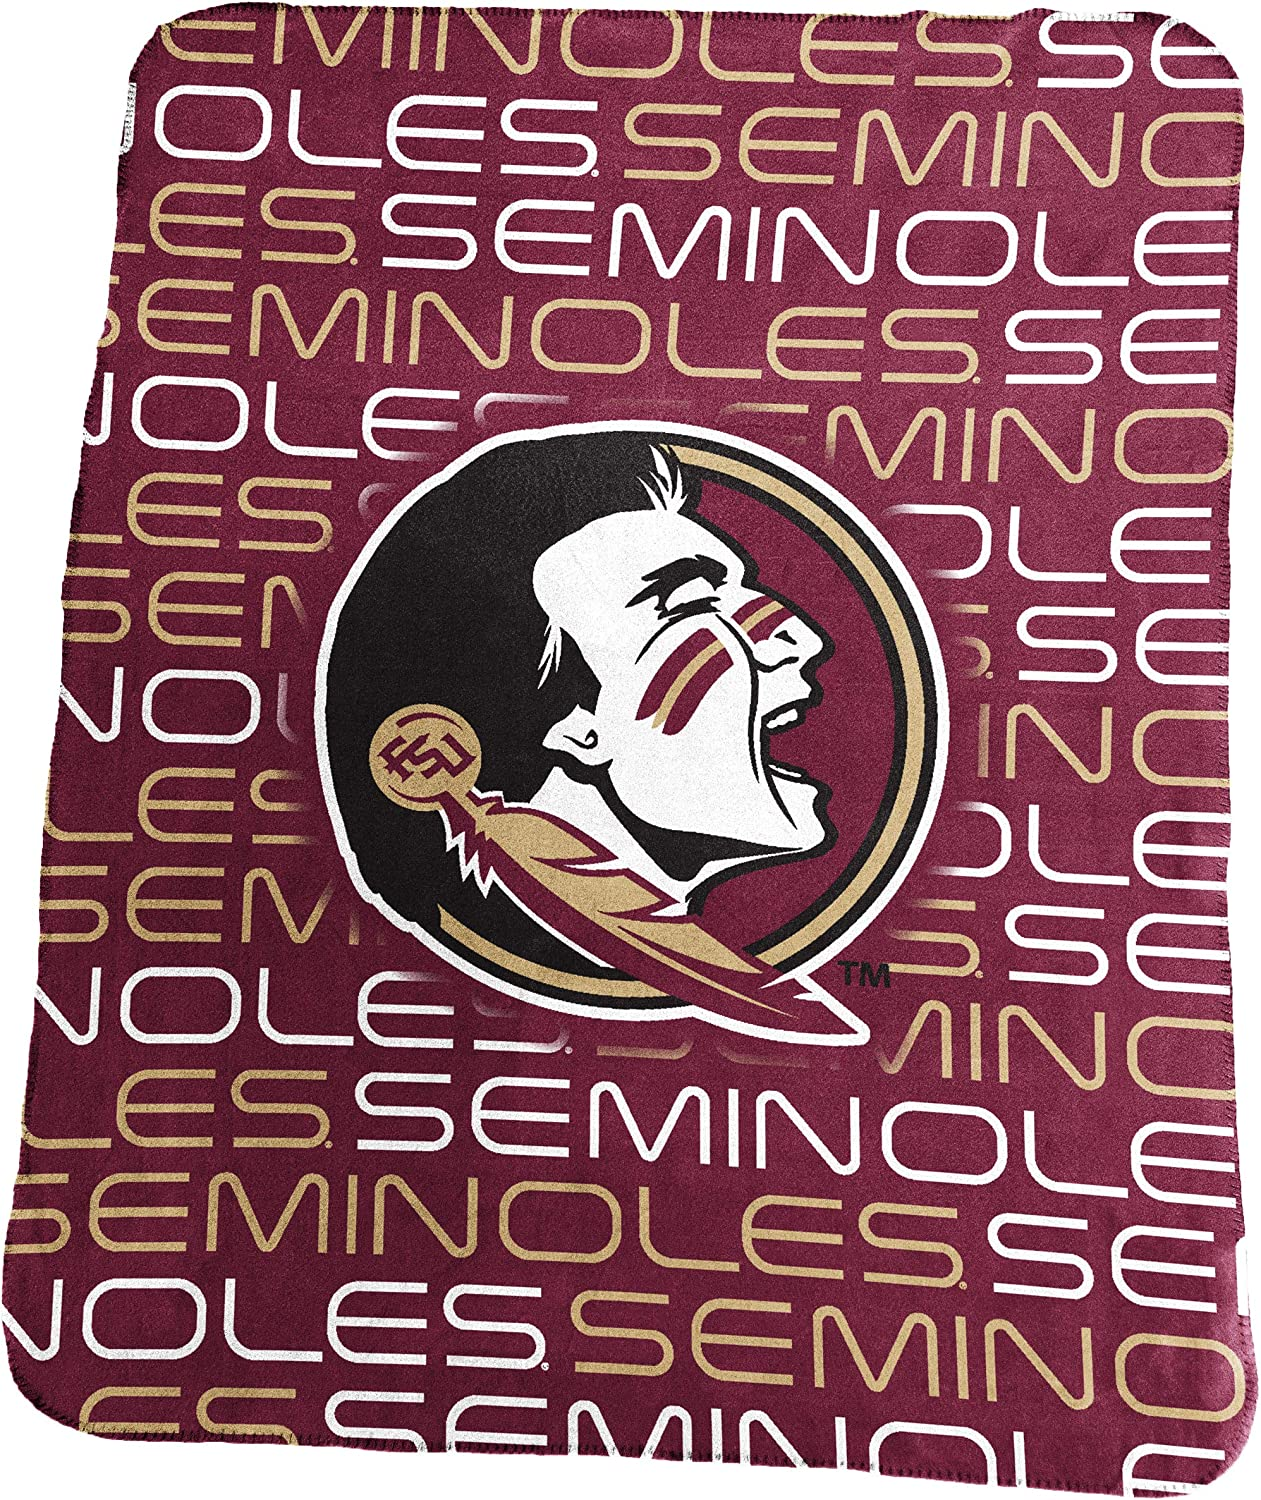 "Collegiate 50x60"" Classic Fleece Throw Blanket"